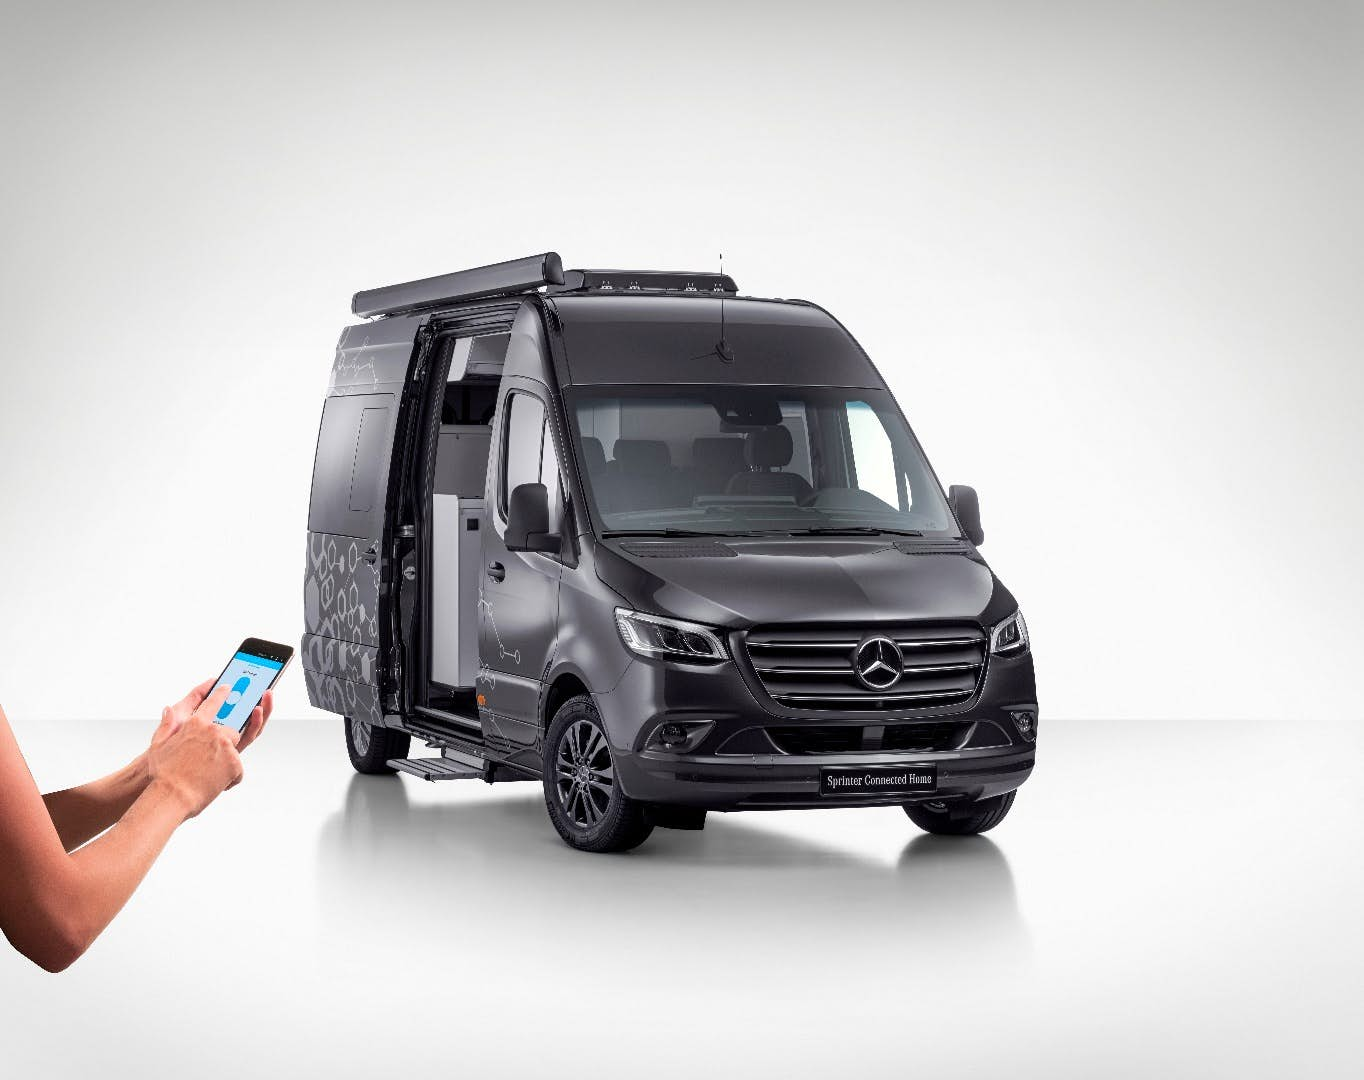 mercedes unveils 3 new innovative smart camper vans - outbound living